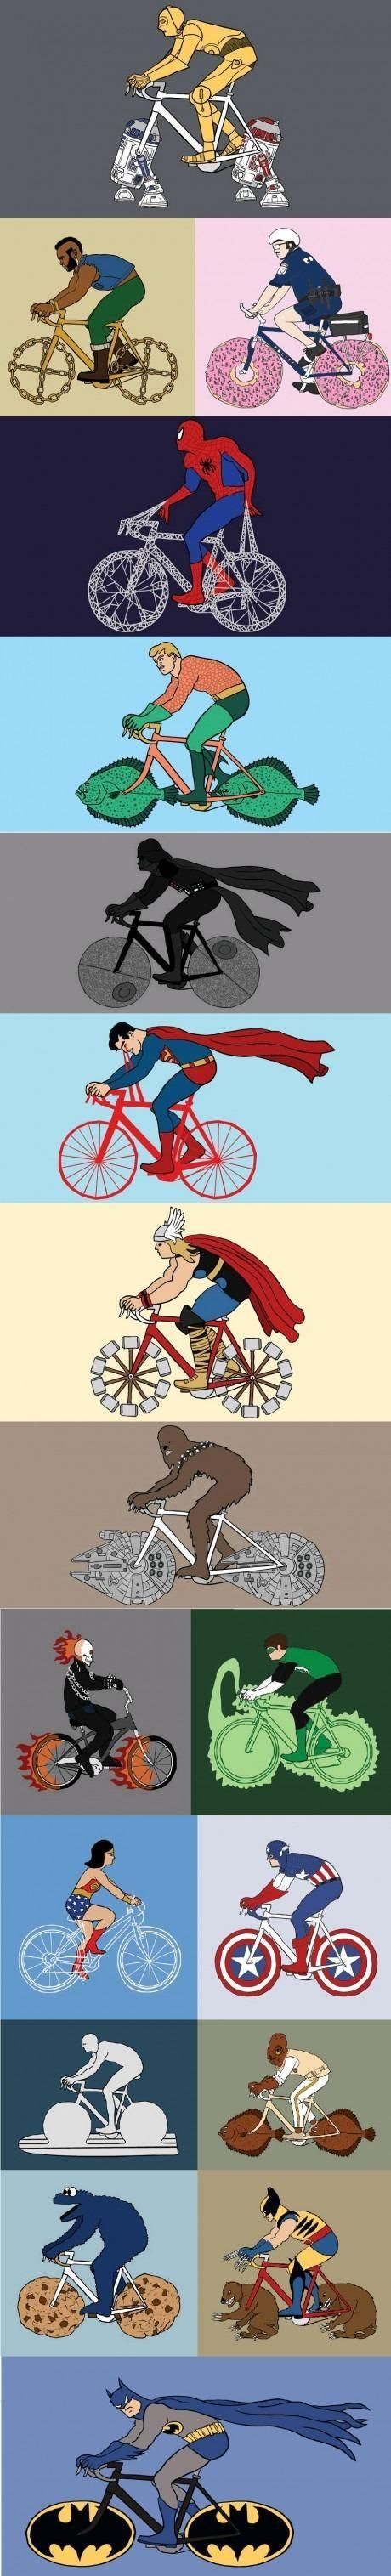 Bikes. My two favorite things come together!!